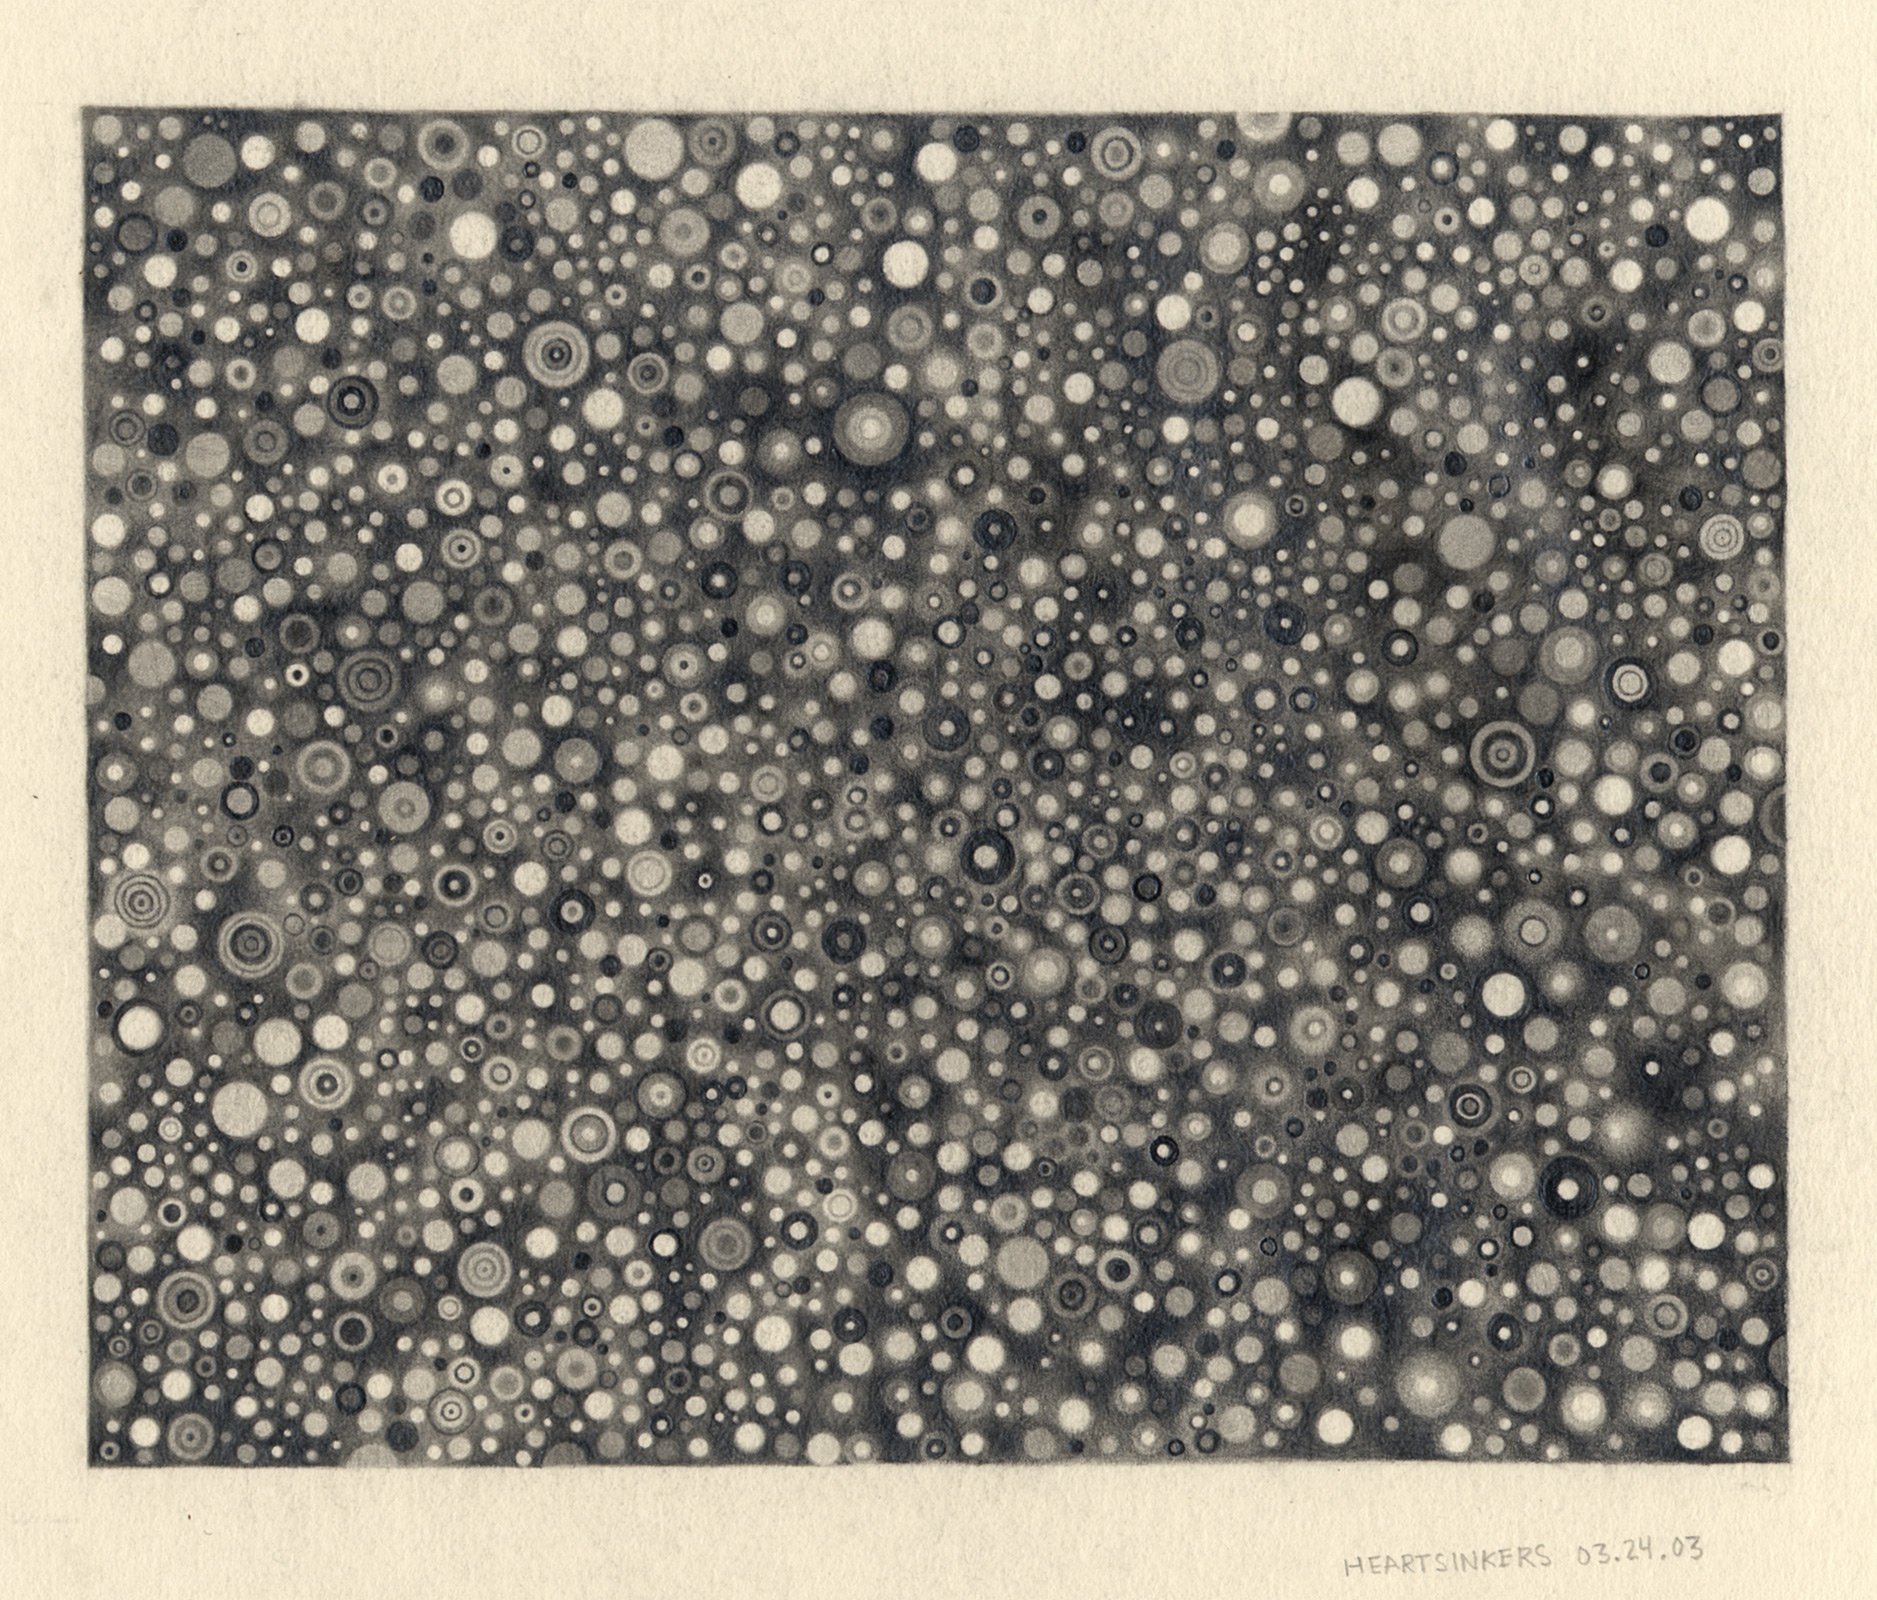 "Heartsinkers , 2003. Graphite on paper. 7.5"" x 6""."